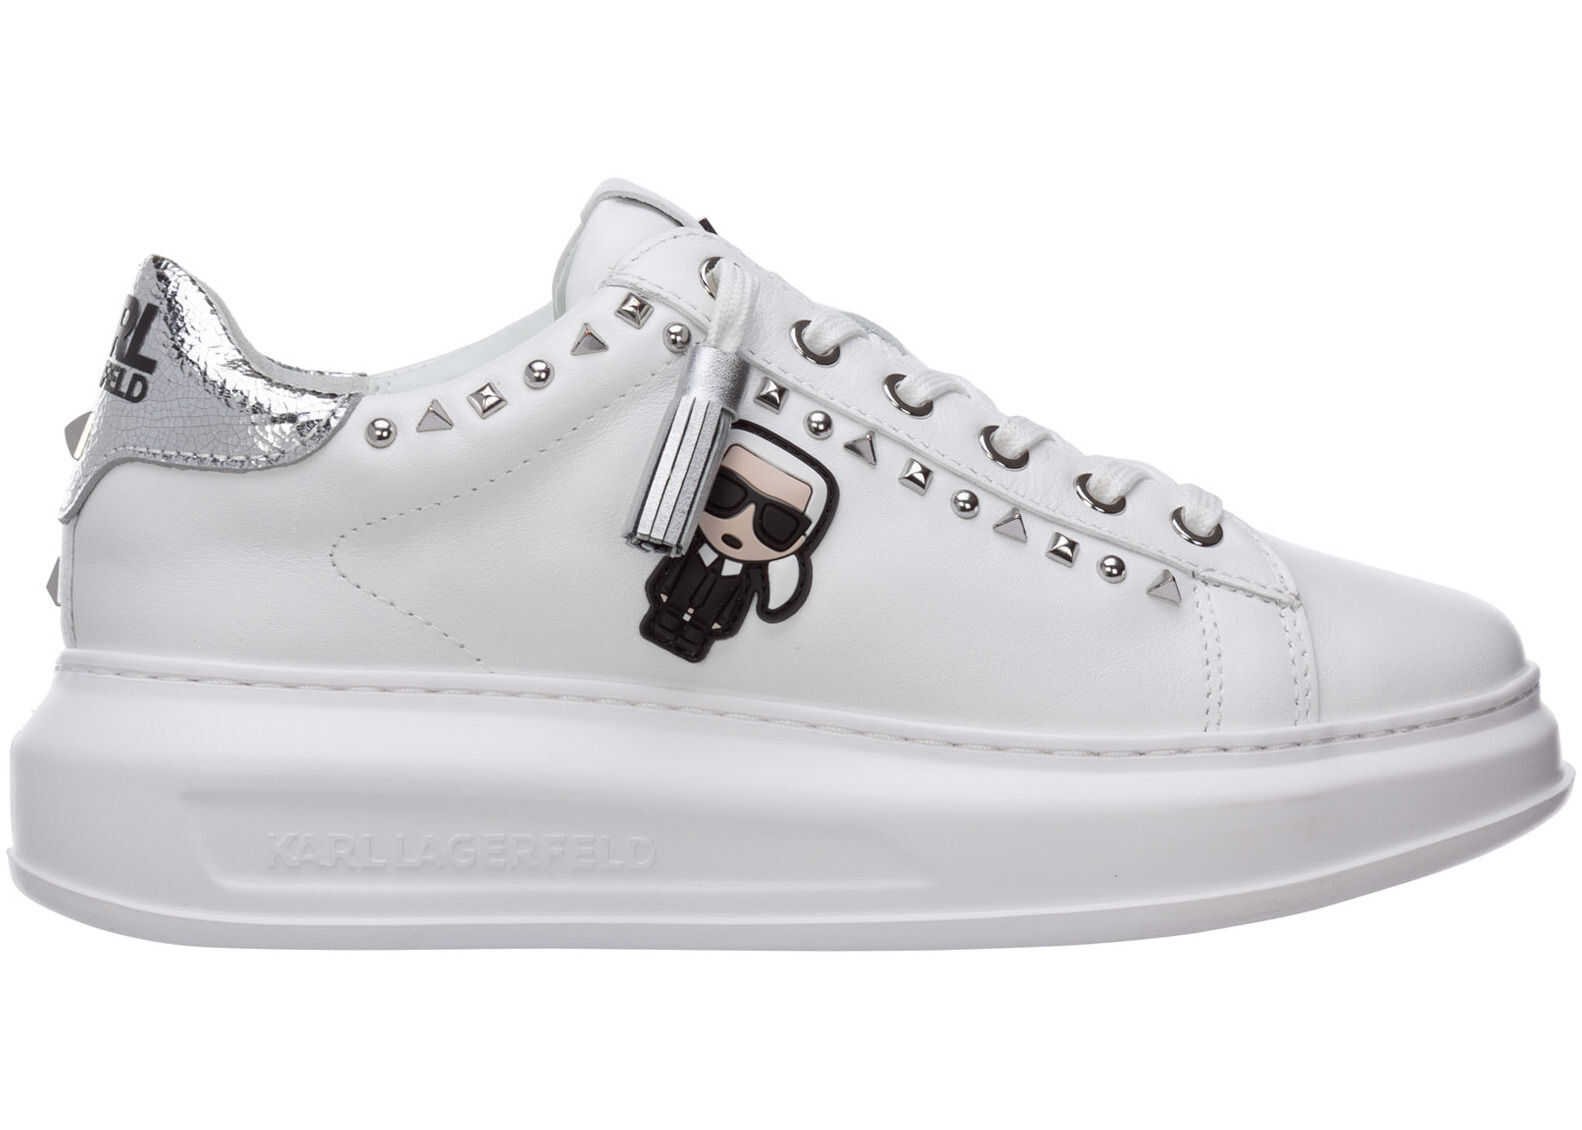 Karl Lagerfeld Shoes Leather Trainers Sneakers K/Ikonik White